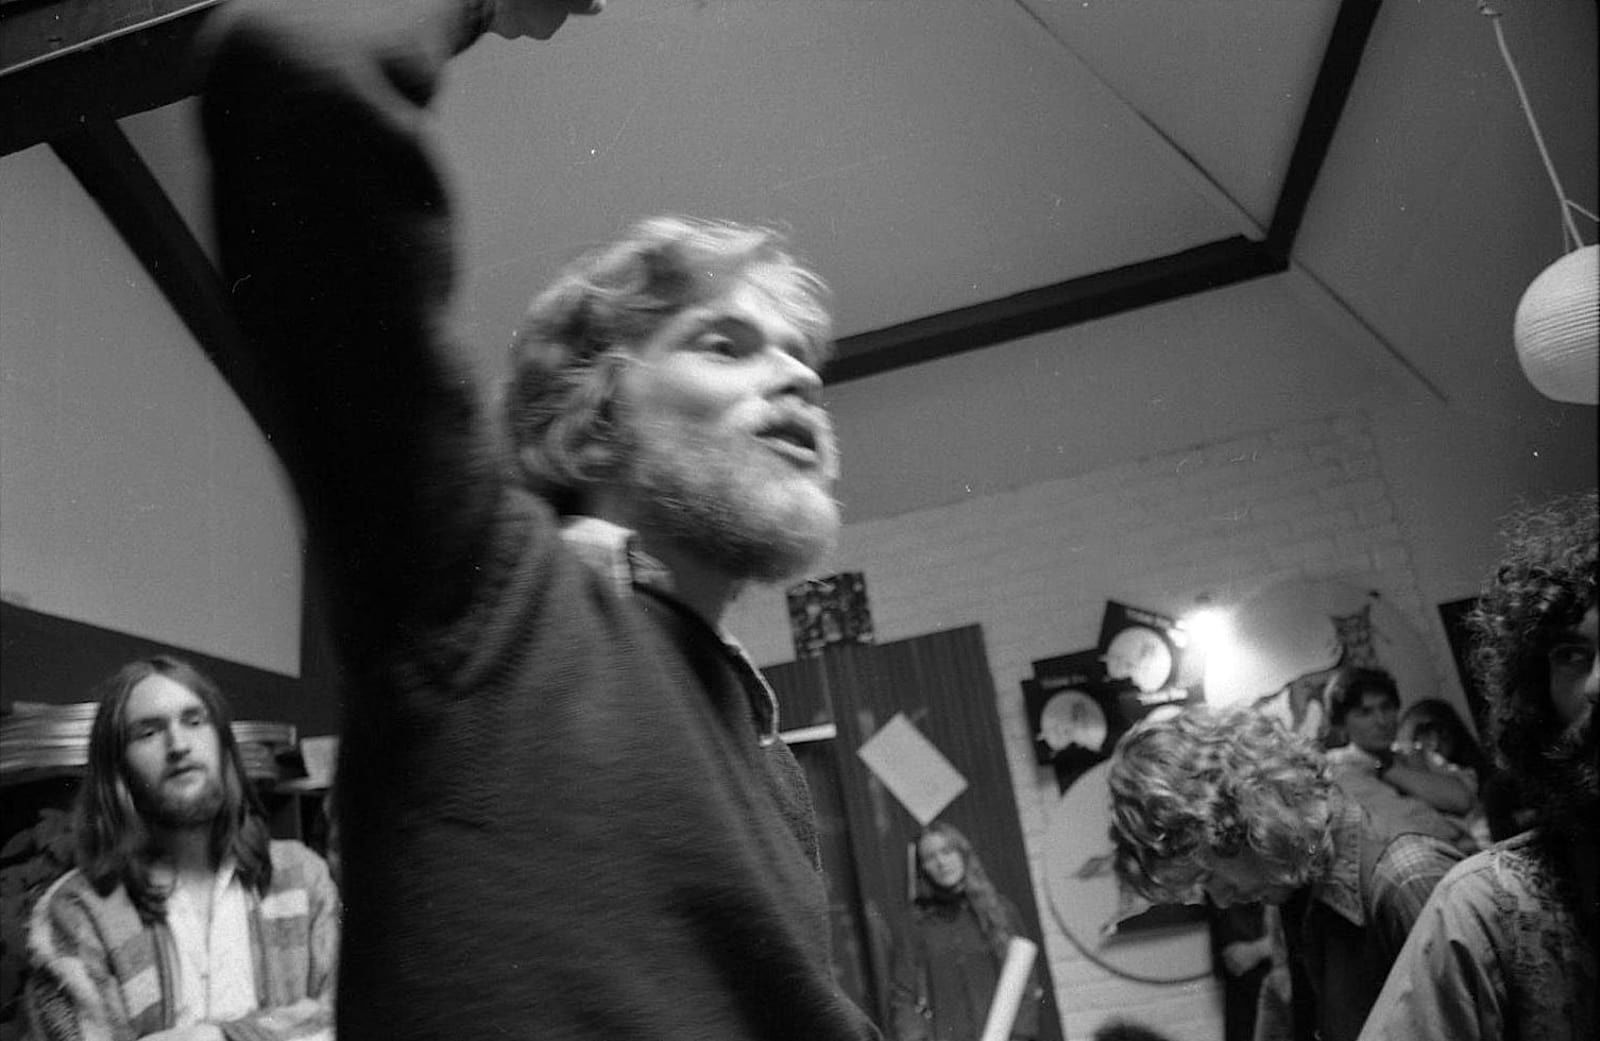 A young, bearded Richard Branson in the studio with his arm raised